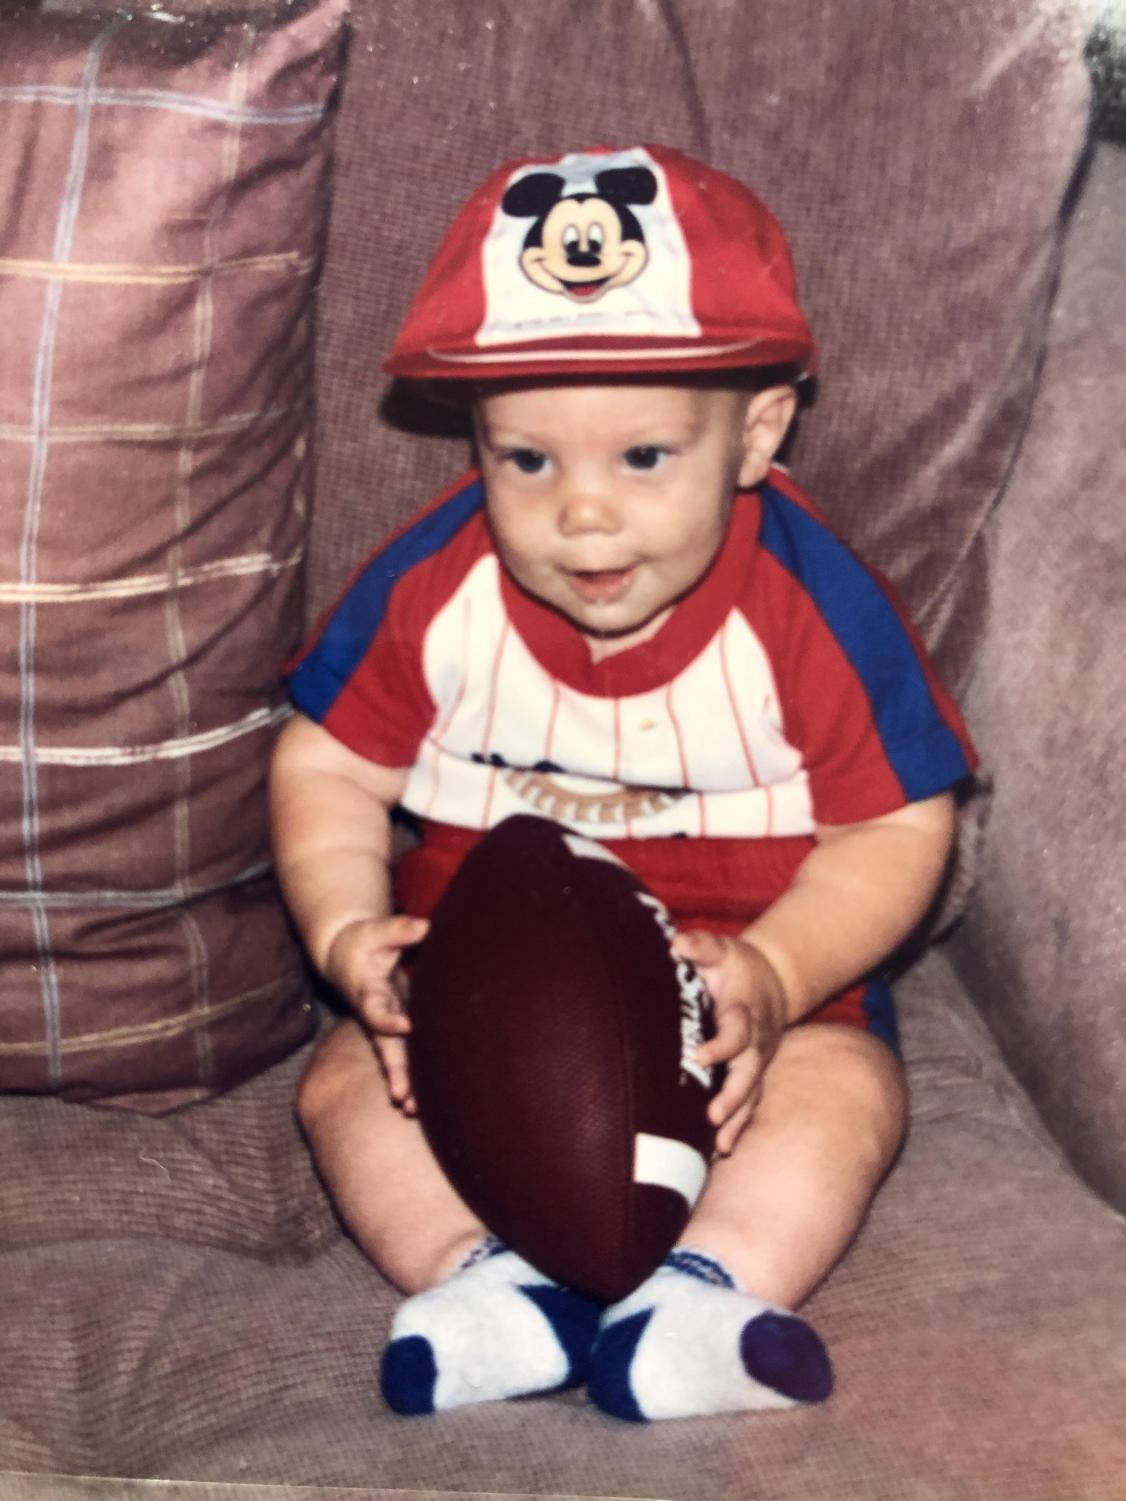 A young Stiver poses with a football